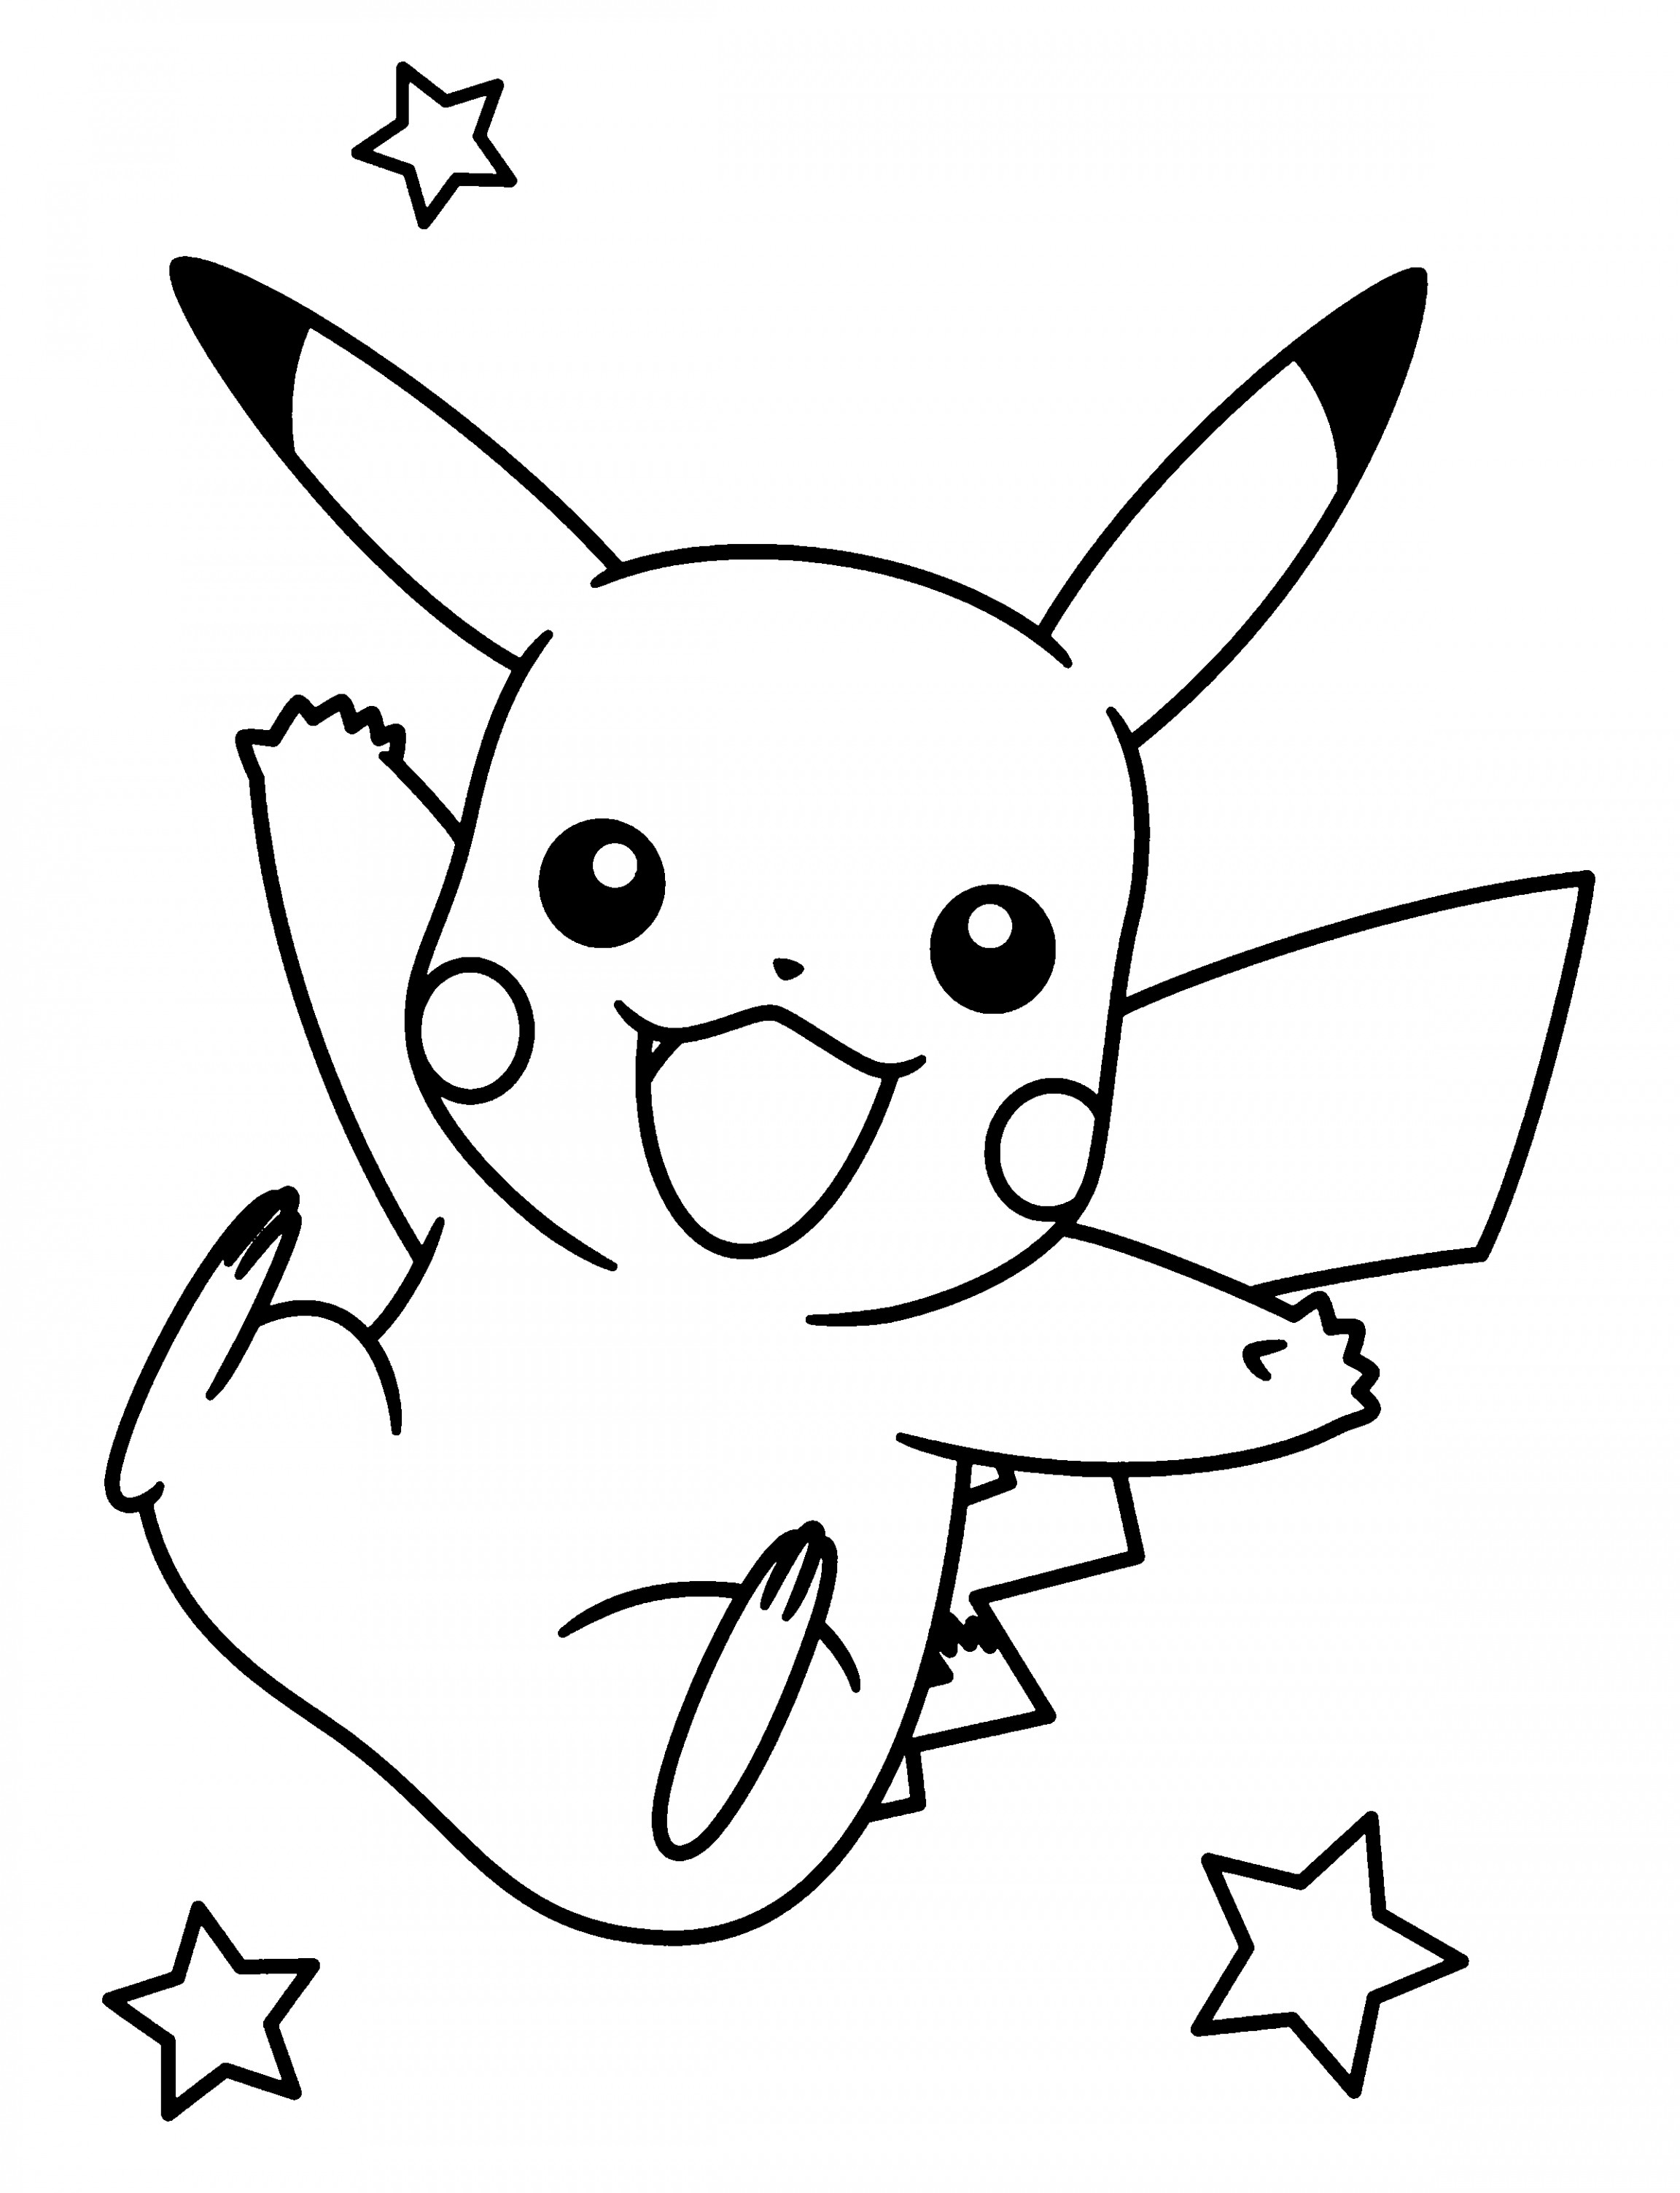 coloring pages of pikachu cute pikachu coloring pages at getdrawings free download pikachu of coloring pages